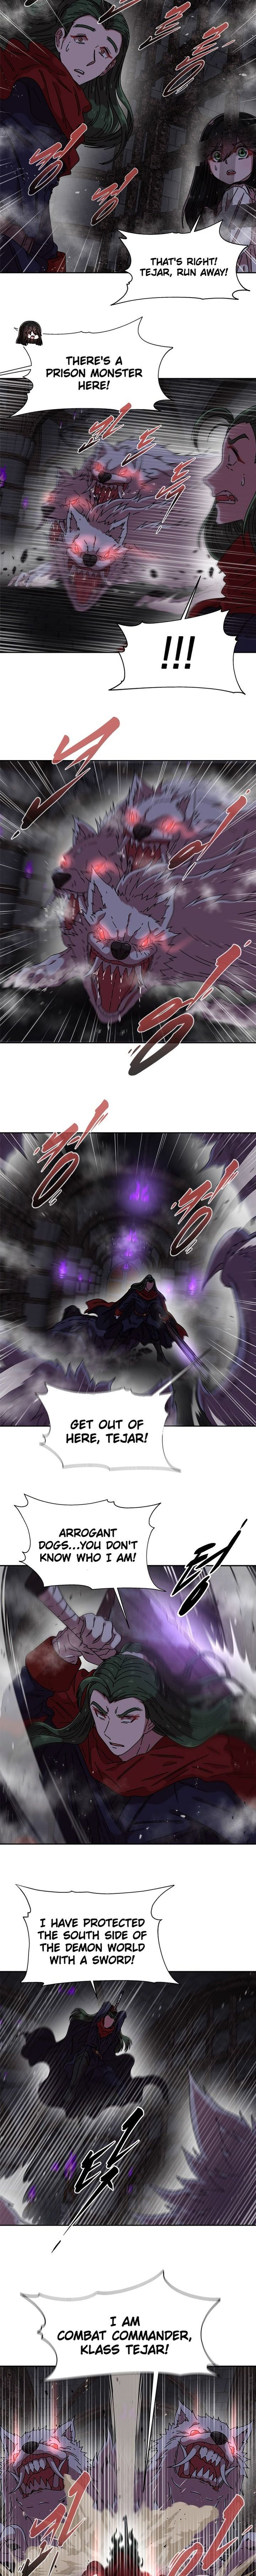 i_was_born_as_the_demon_lords_daughter_51_3